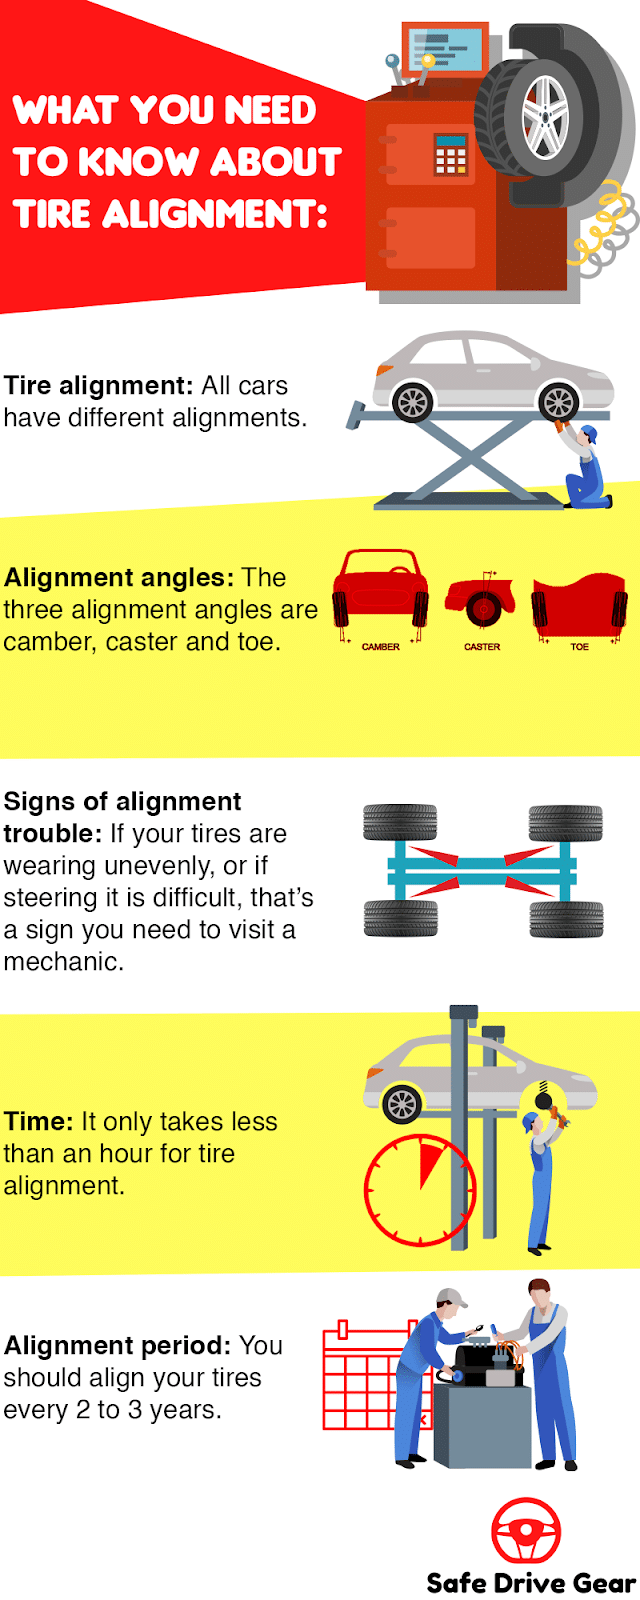 how long does a tire alignment take